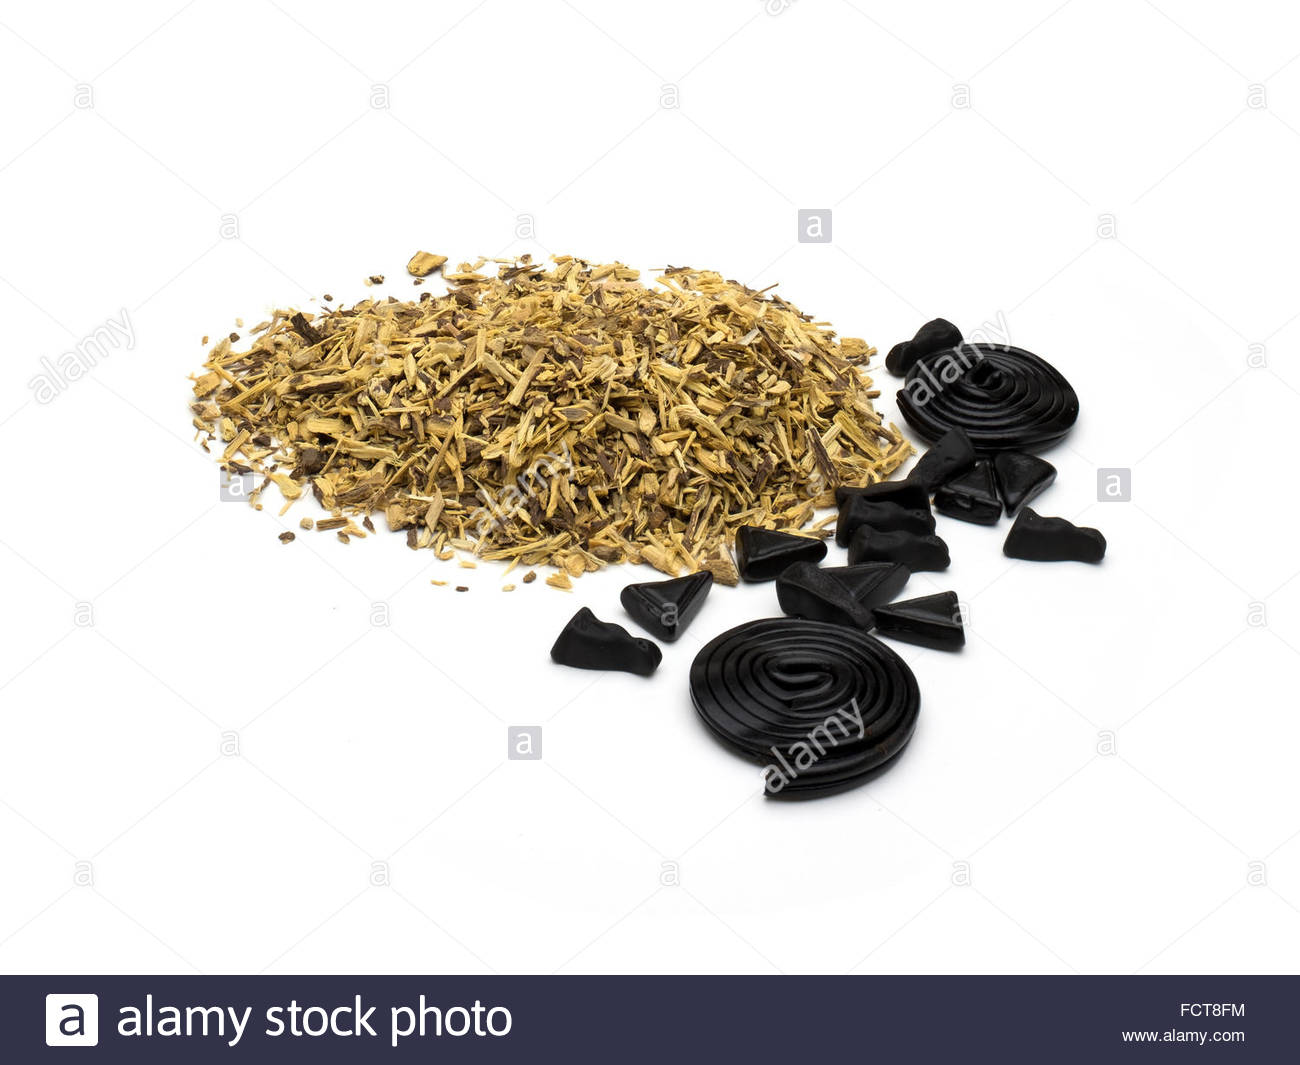 Liquorice (licorice), Glycyrrhiza glabra, with candy made from it. - Stock Image